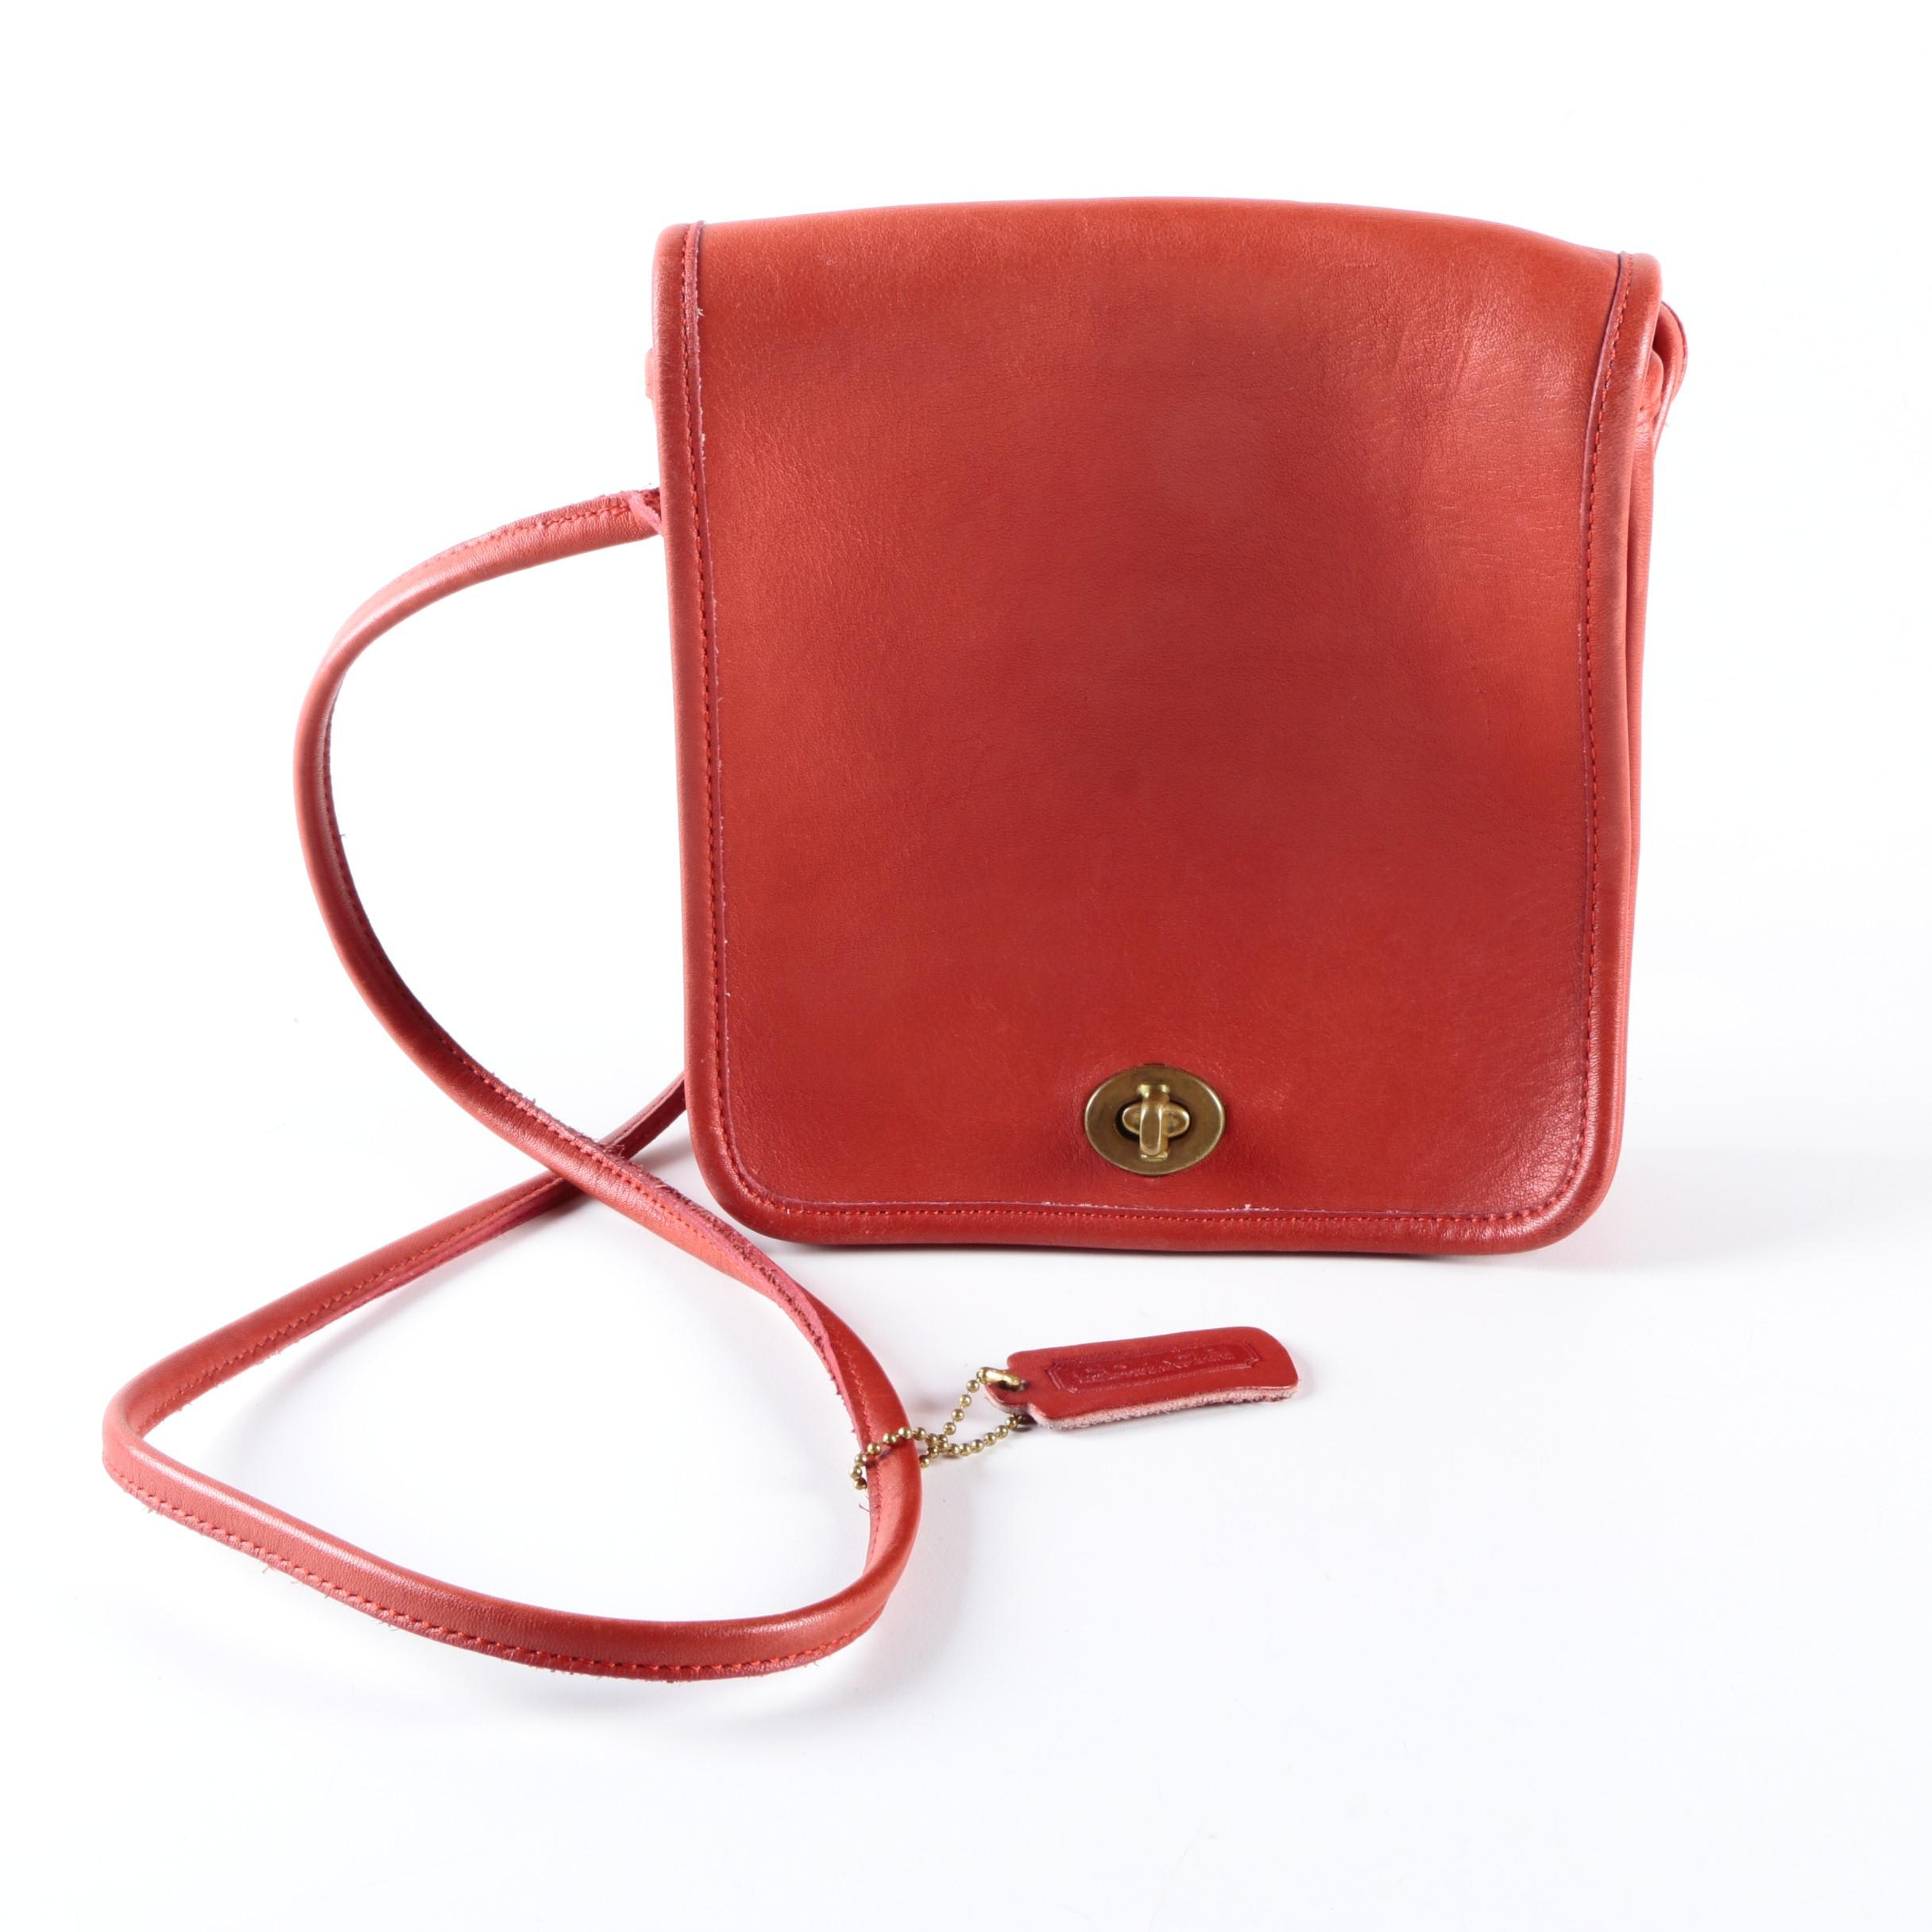 Vintage Coach Red Leather Crossbody Bag